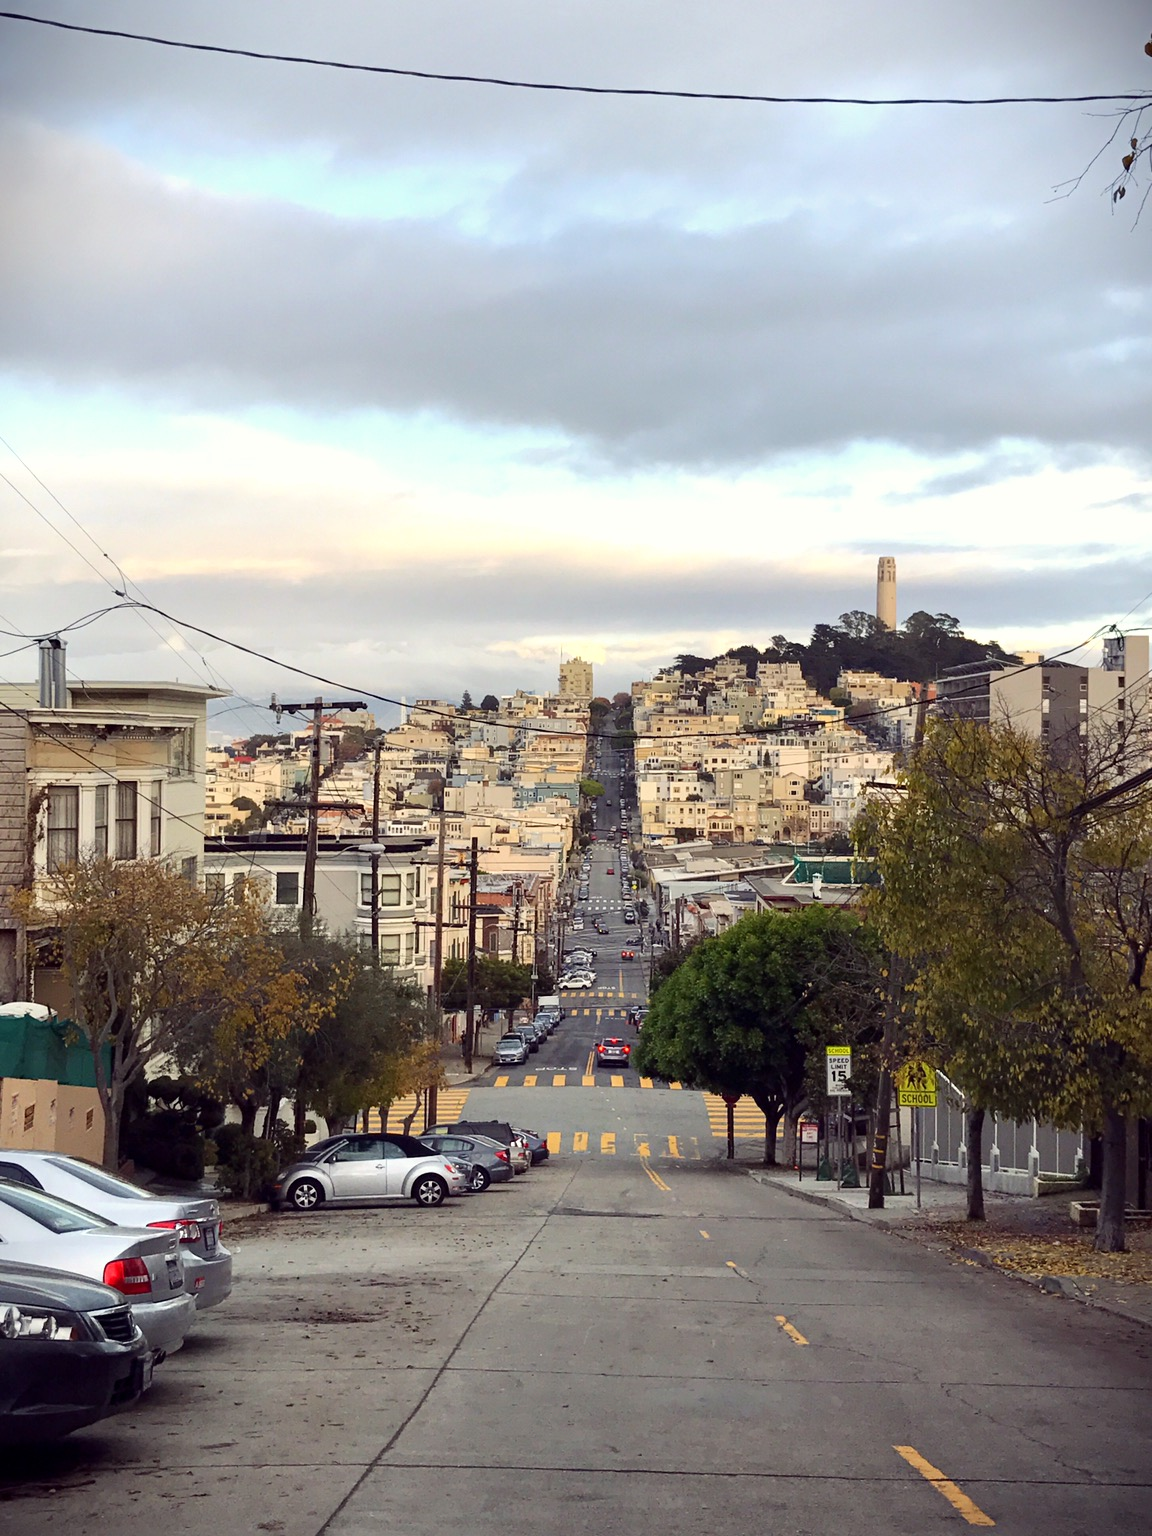 The view from Lombard Street. The streets of San Francisco are typically tilted and steep like this.